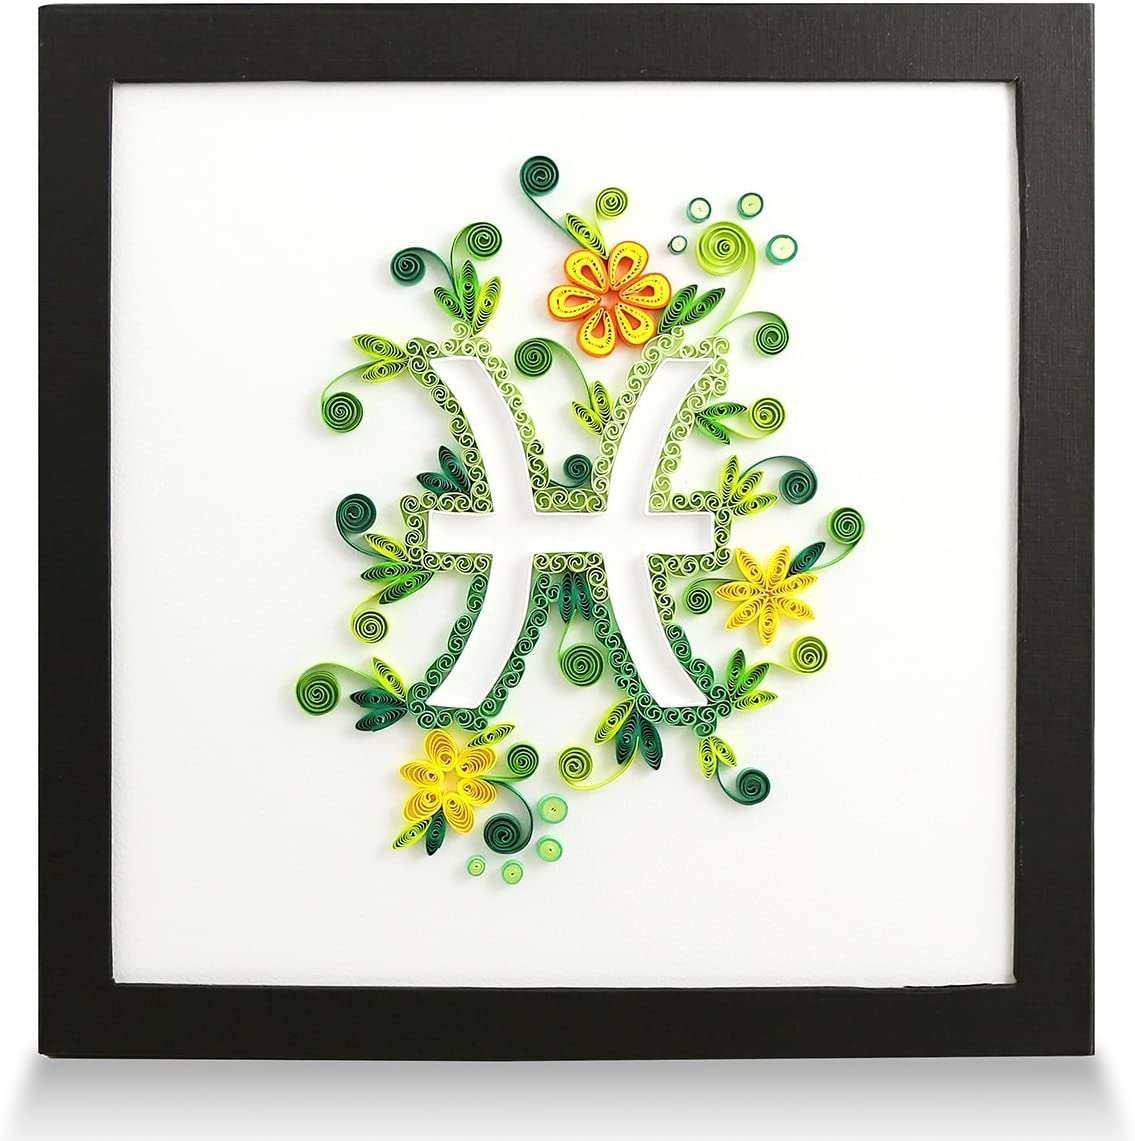 Zodiac Pisces Handmade Personalized Gifts for Him Her Frame Paper Quilling 3D Wall Art for Home Decor